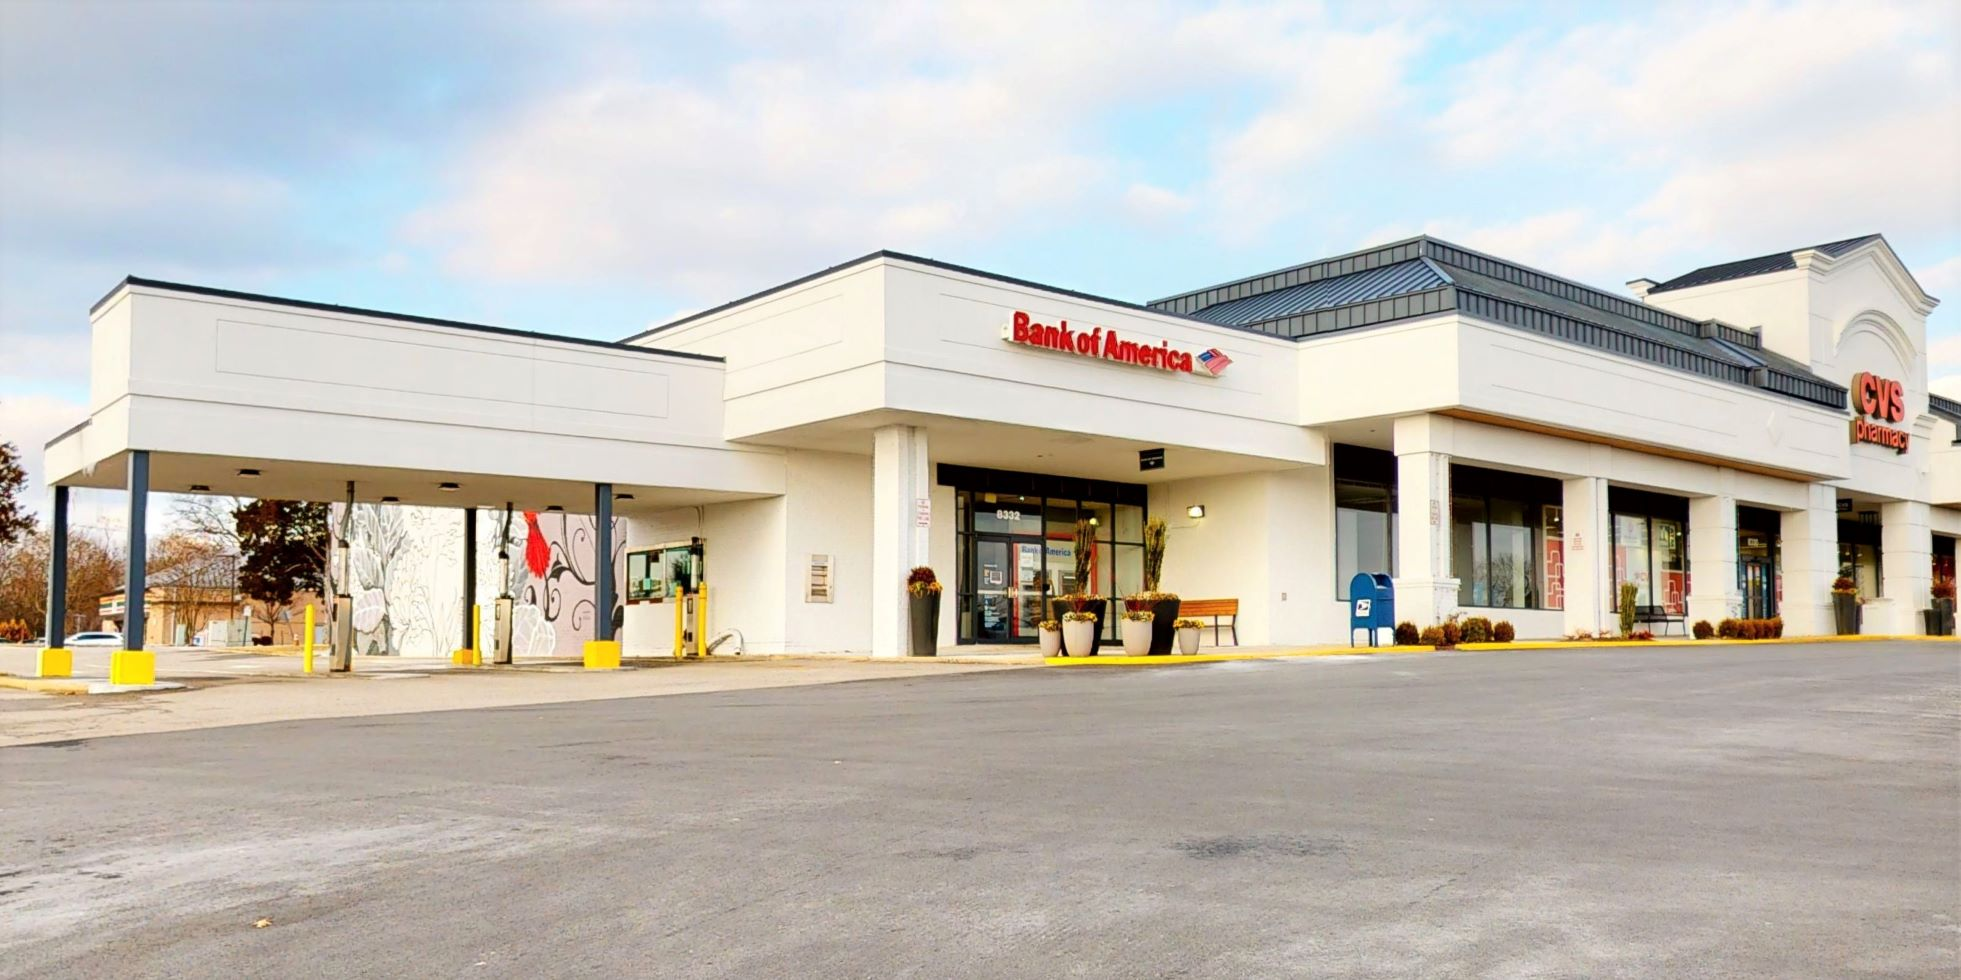 Bank of America financial center with walk-up ATM | 8332 Old Keene Mill Rd, Springfield, VA 22152